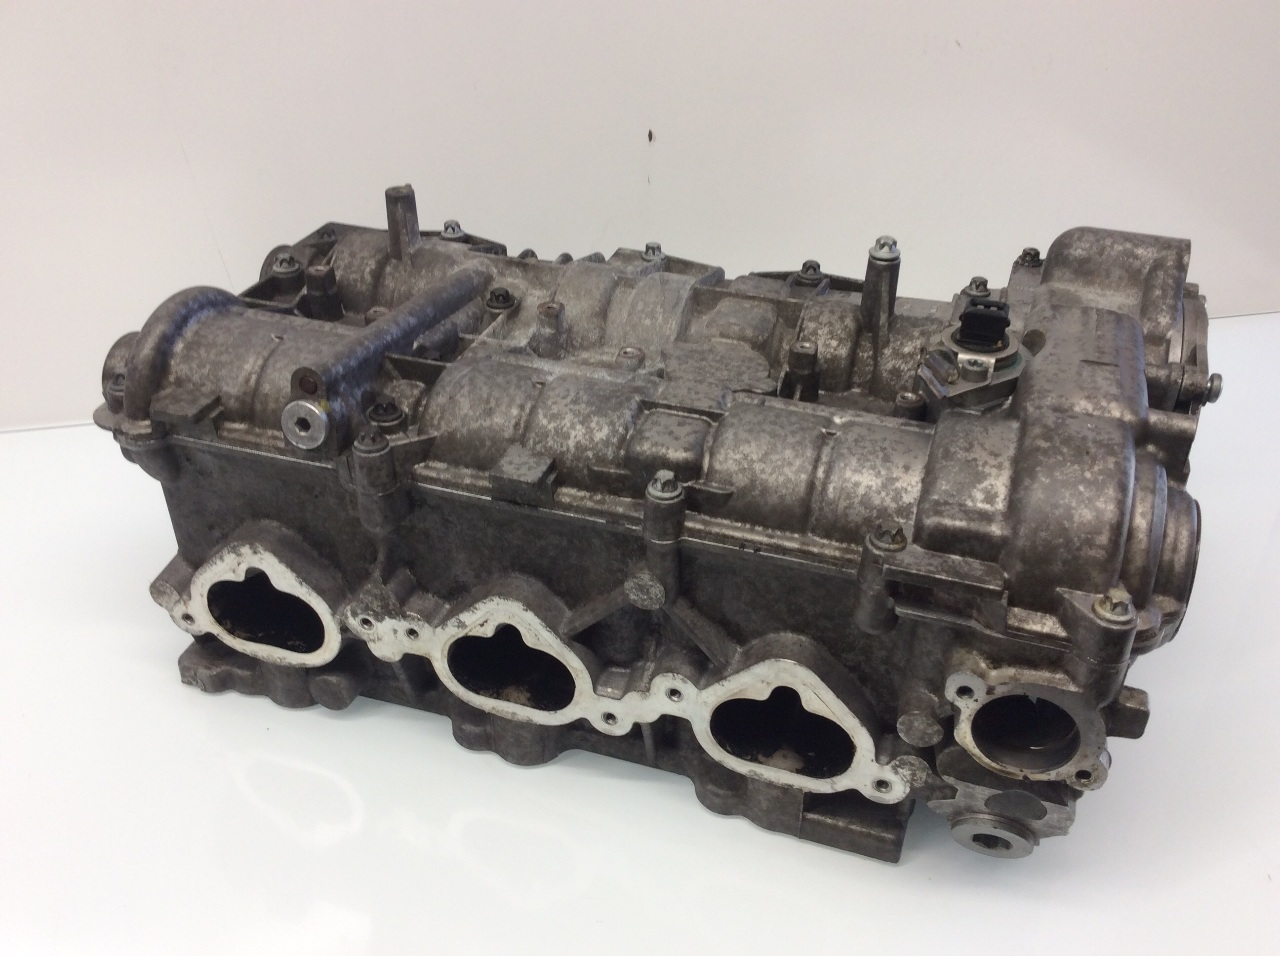 Porsche porsche boxster 3.2 engine : 2003 2004 Porsche Boxster S cylinder head with cams 4-6 cylinder ...